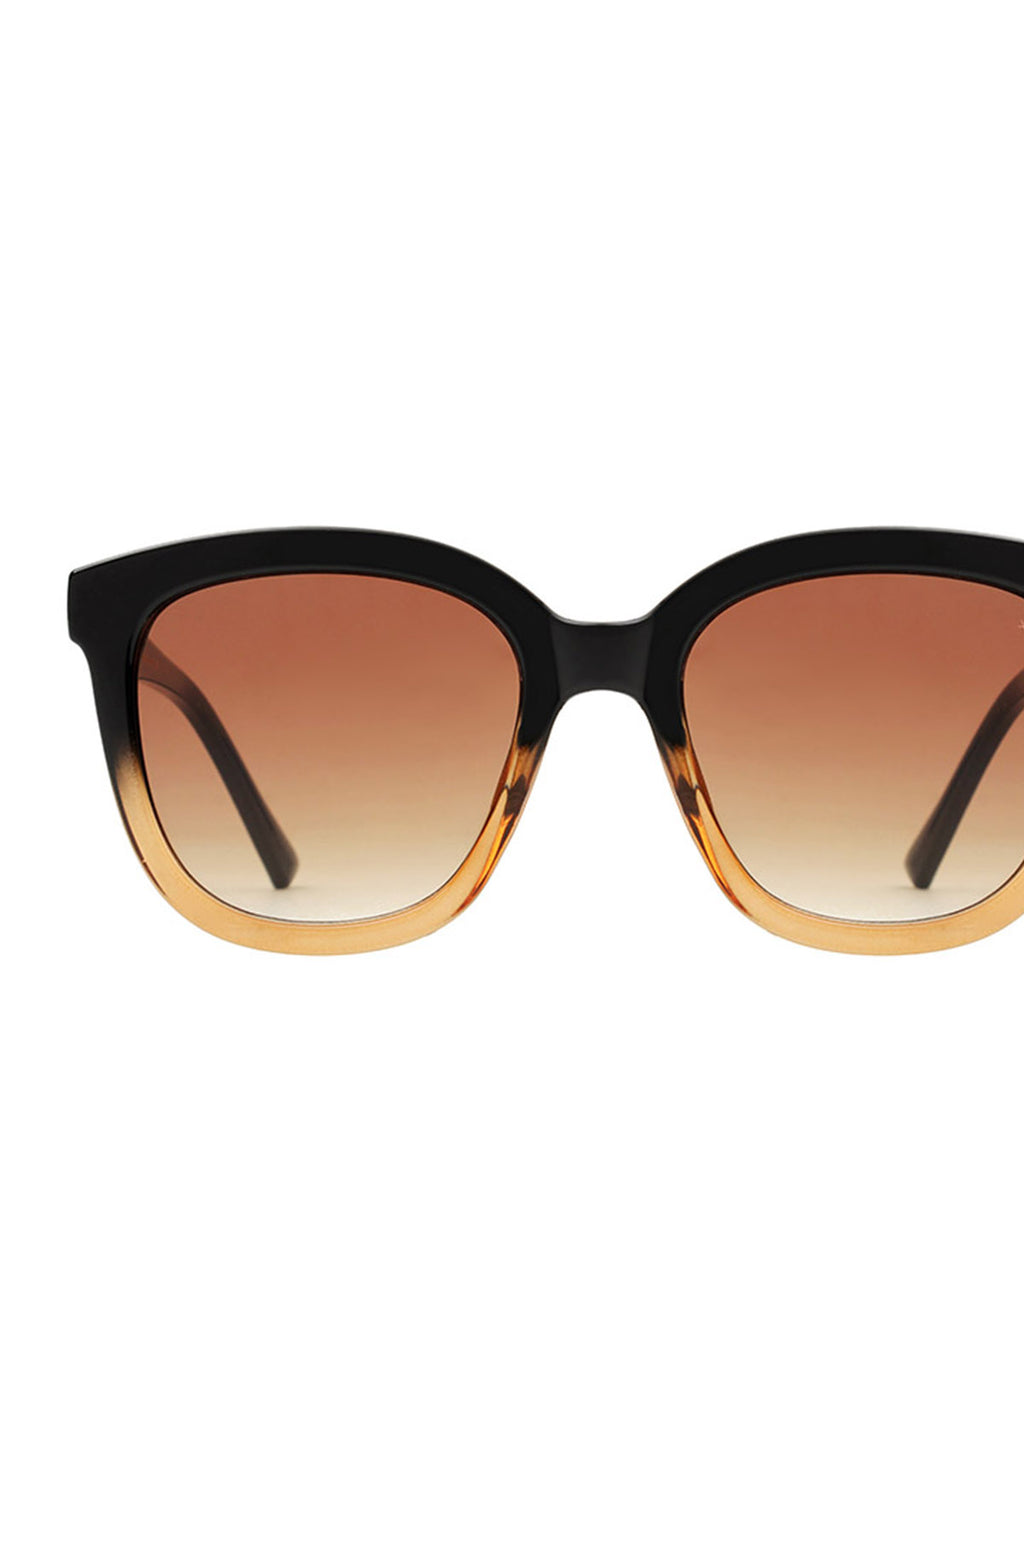 Billy Sunglasses Black/Brown Transparent